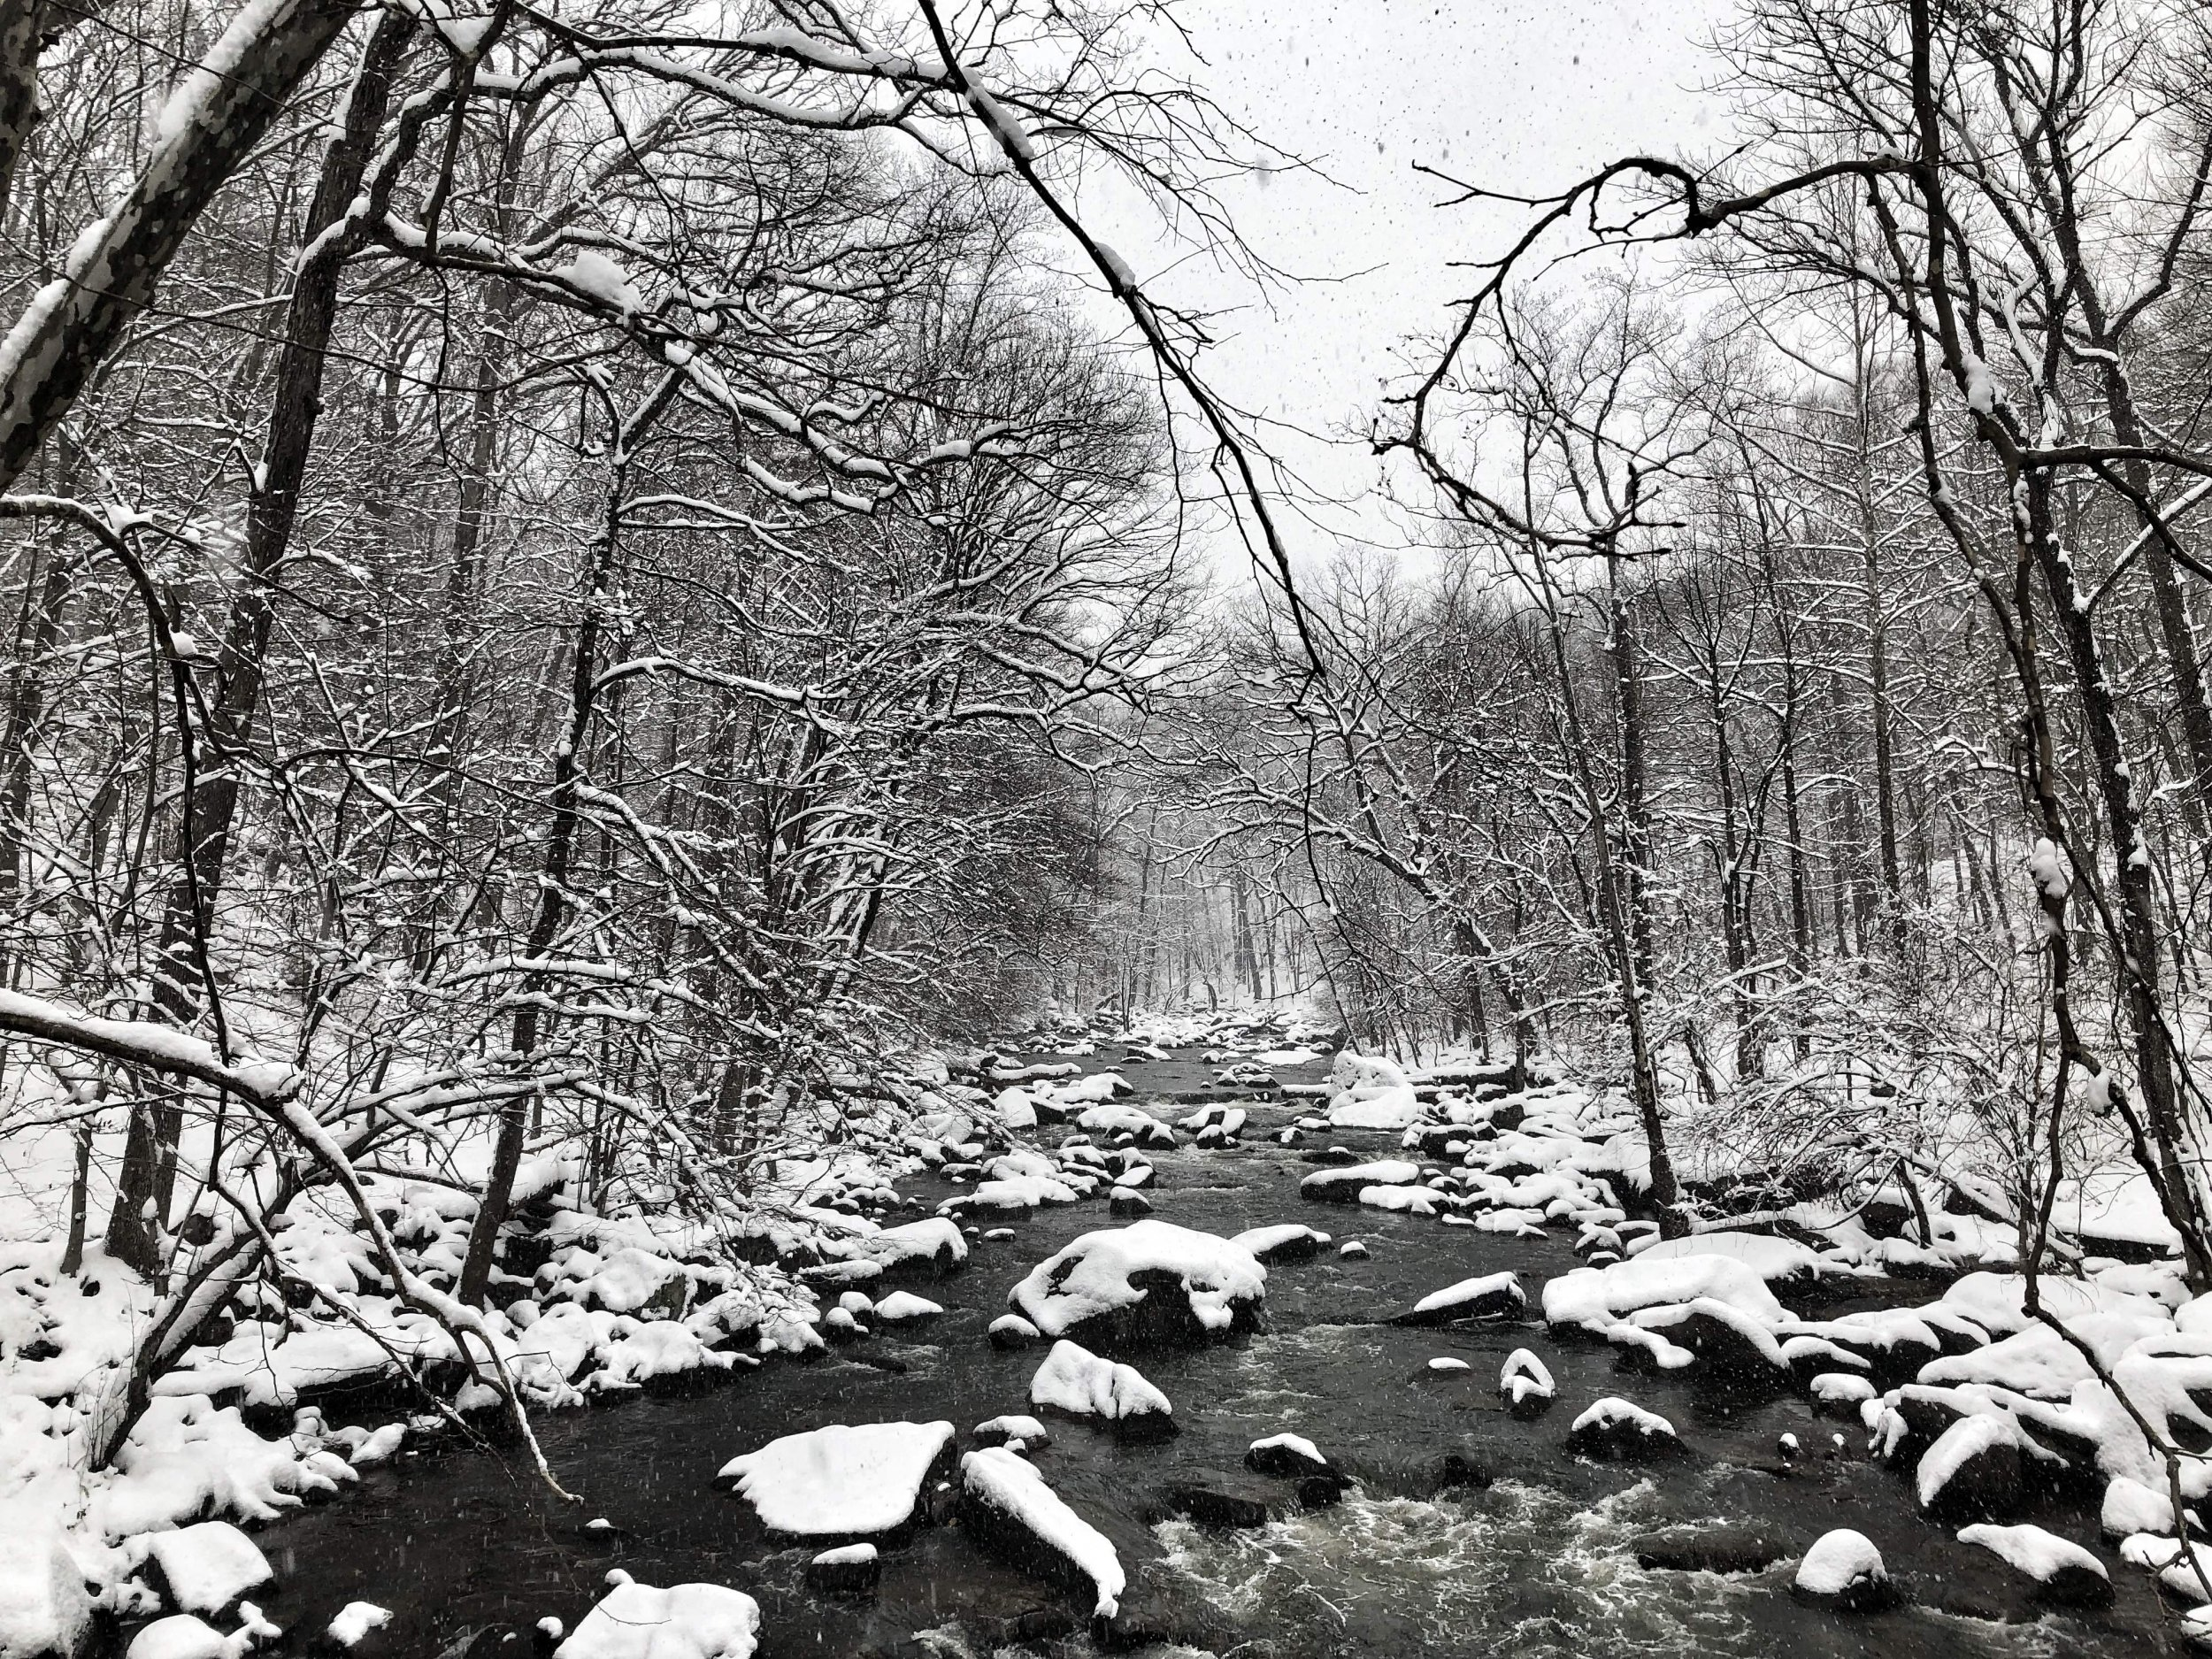 snow on trees and creek